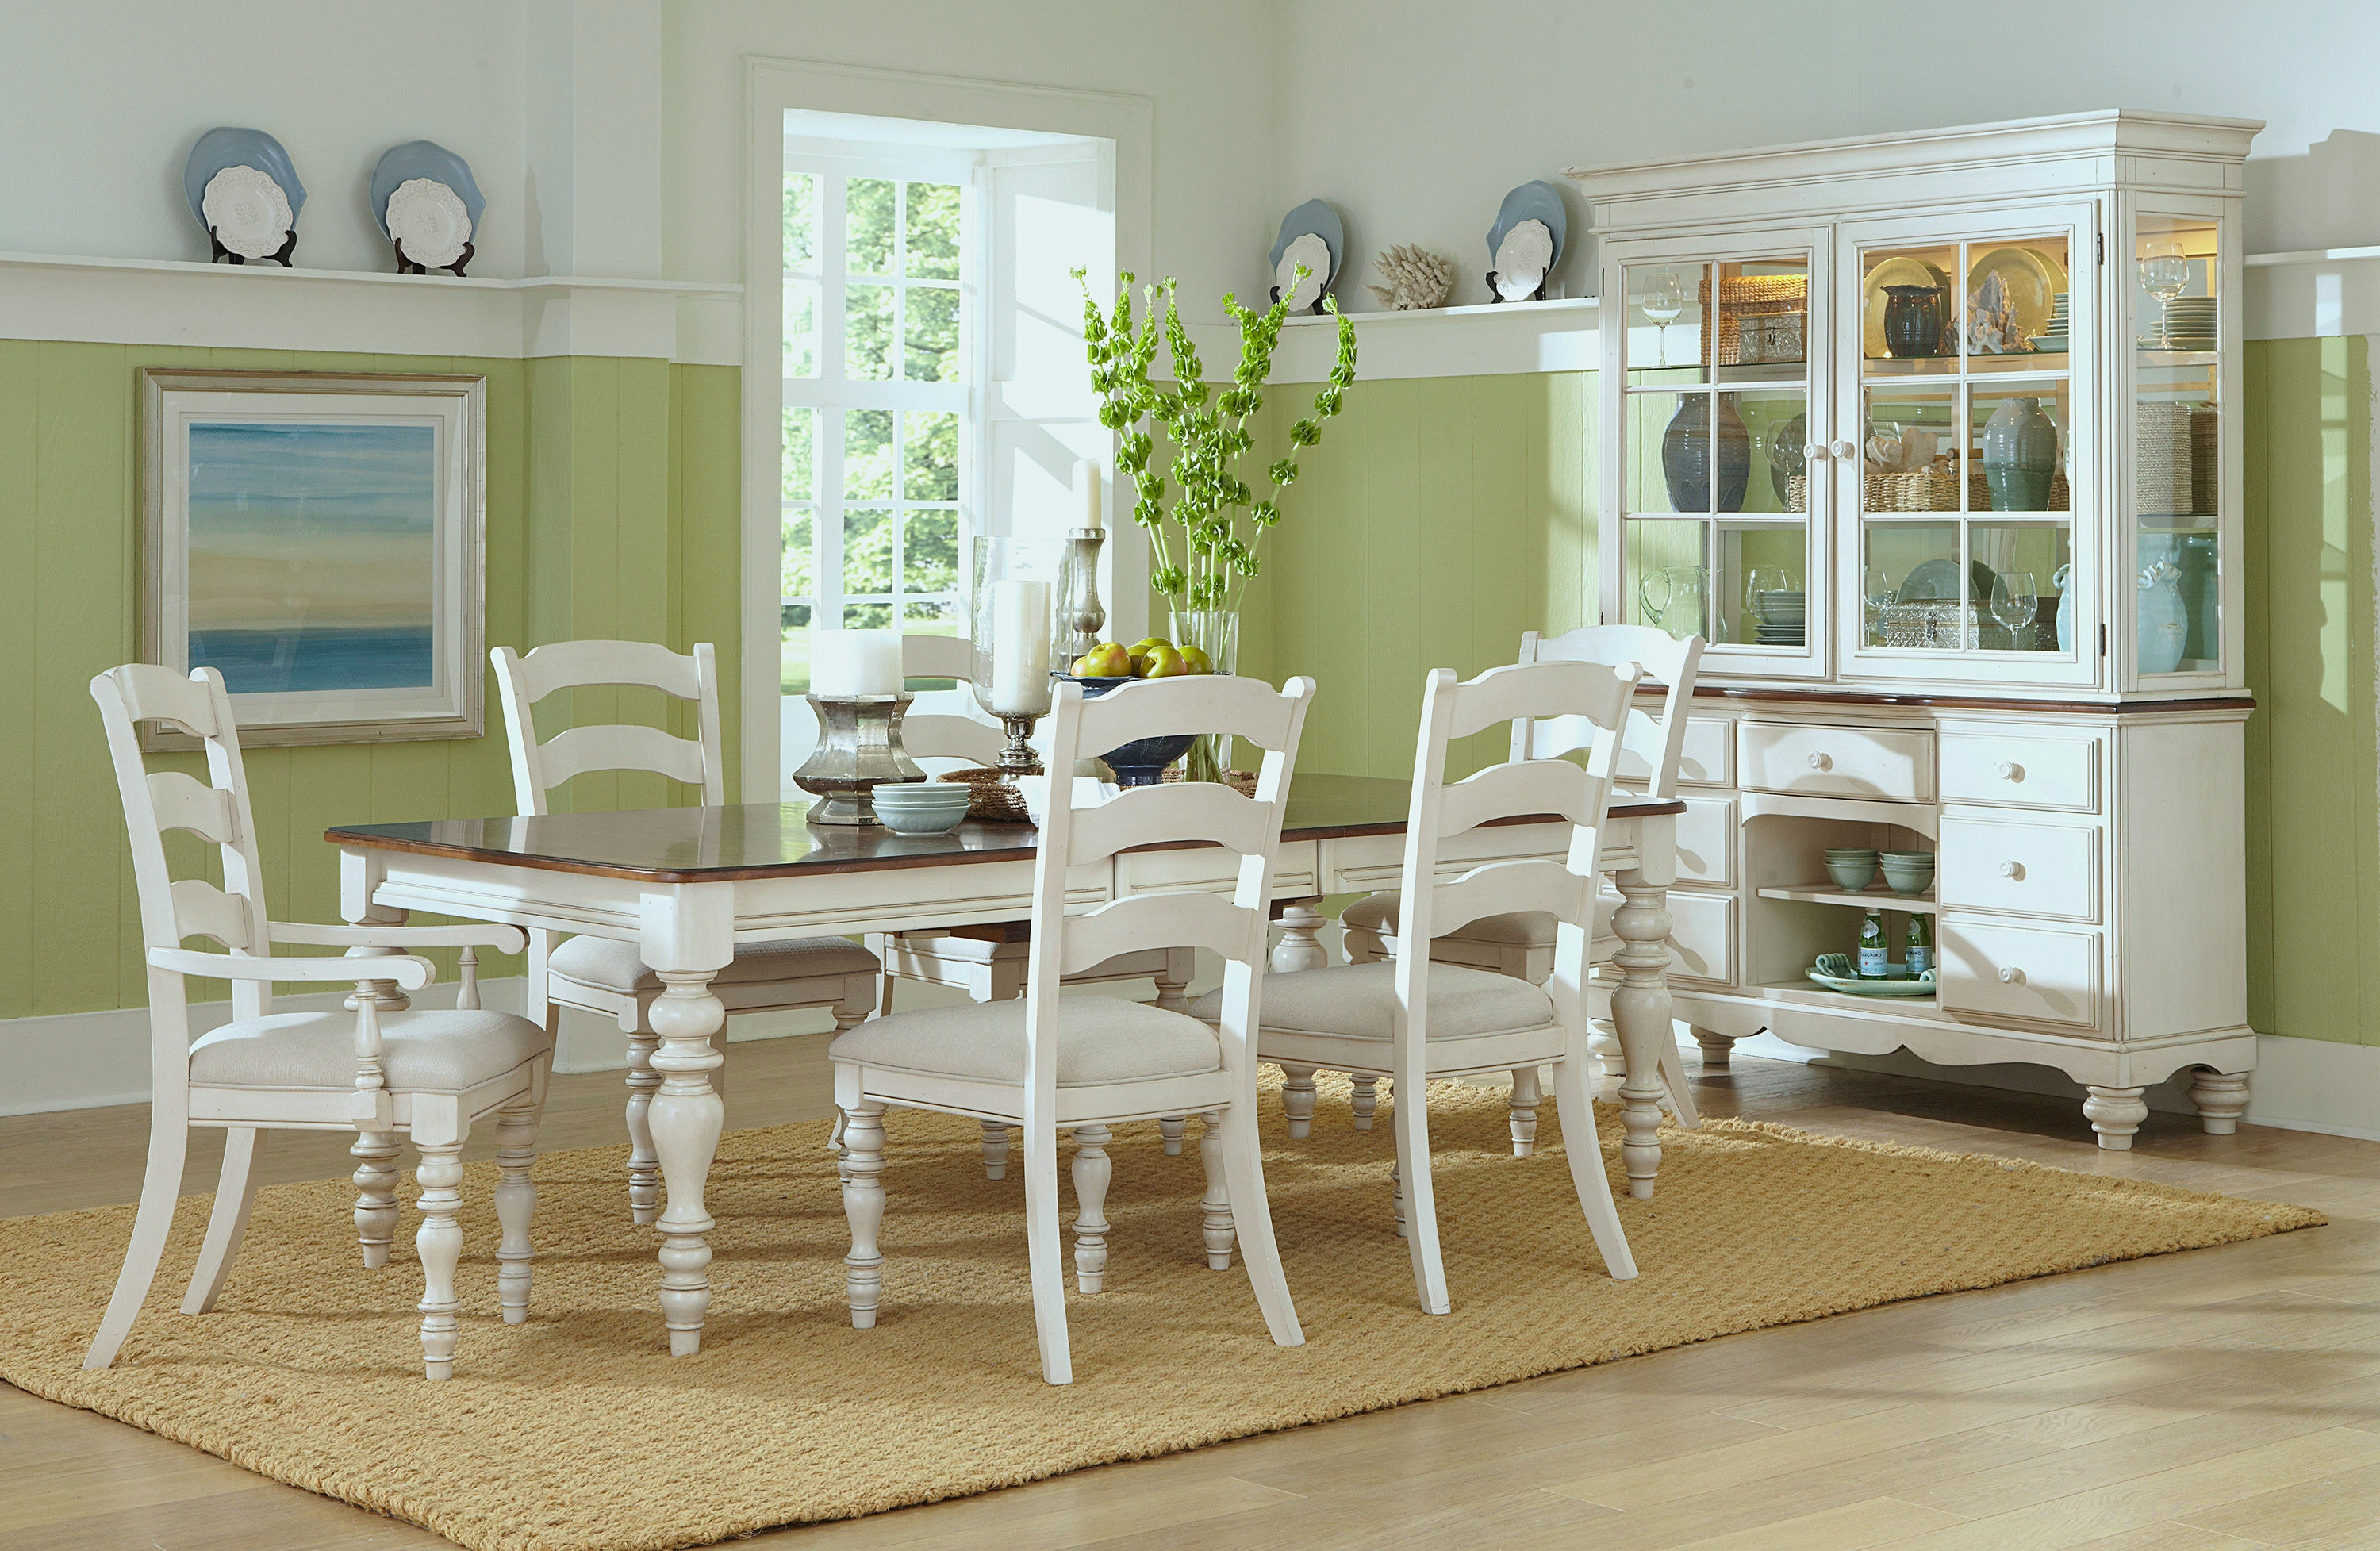 Hillsdale Furniture Pine Island 7 PC Dining Set   With Ladder Back Chairs  5265DTBRCL7